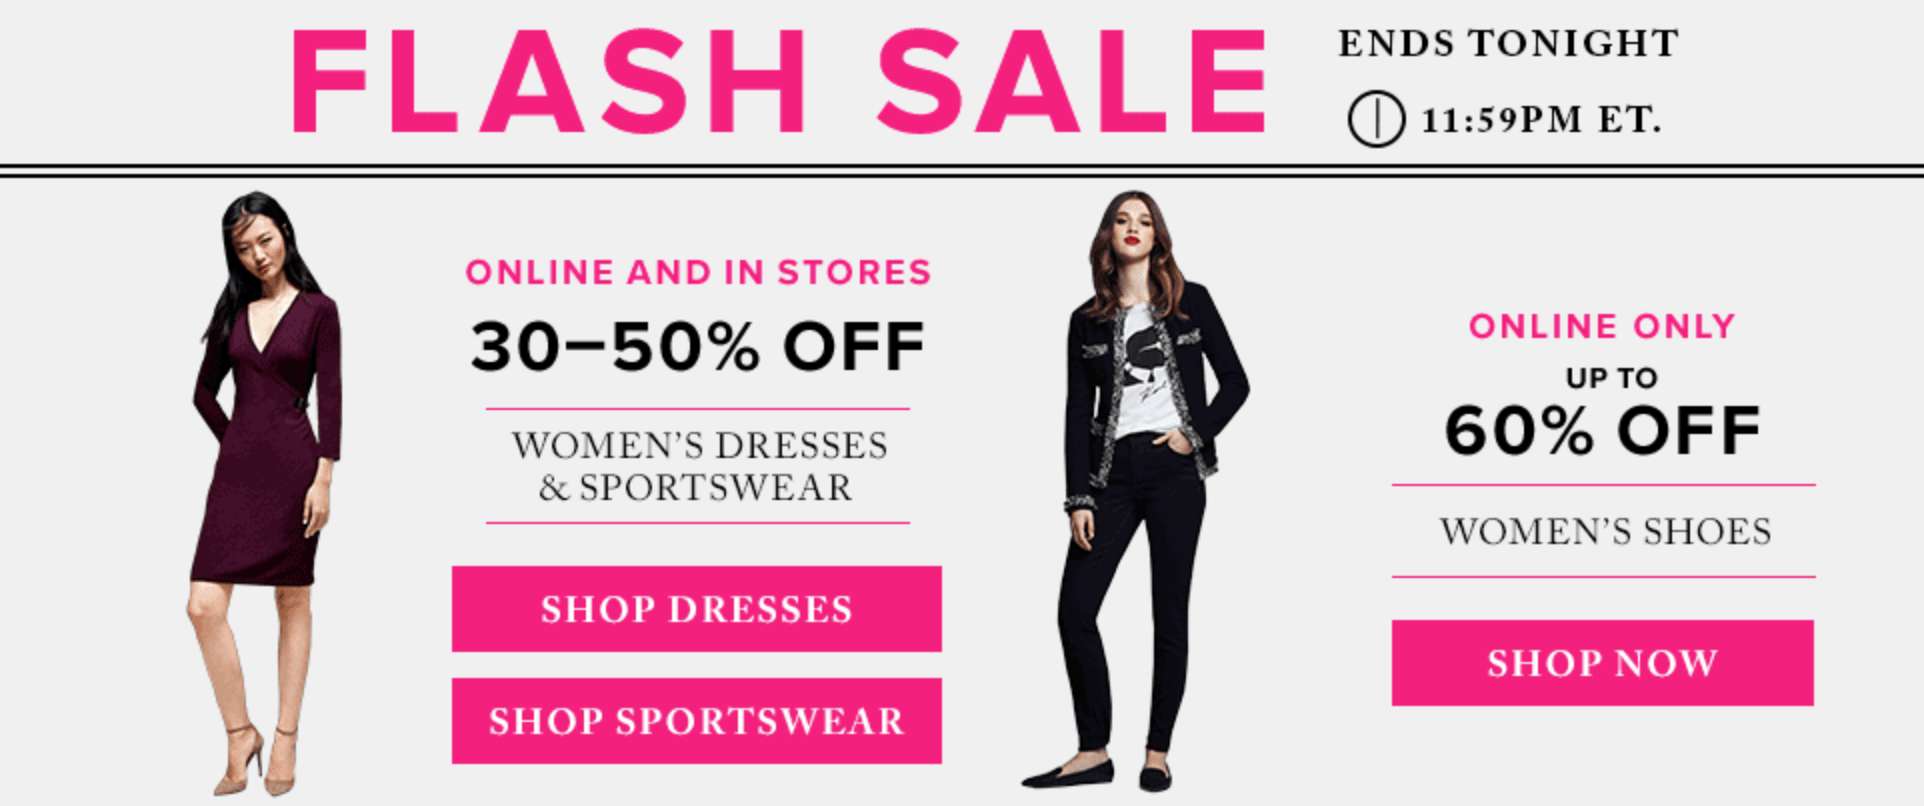 Hudson's Bay Canada Flash Sale: Save Up to 60% Off Shoes + 30% to 50% Off Dresses & Sportswear